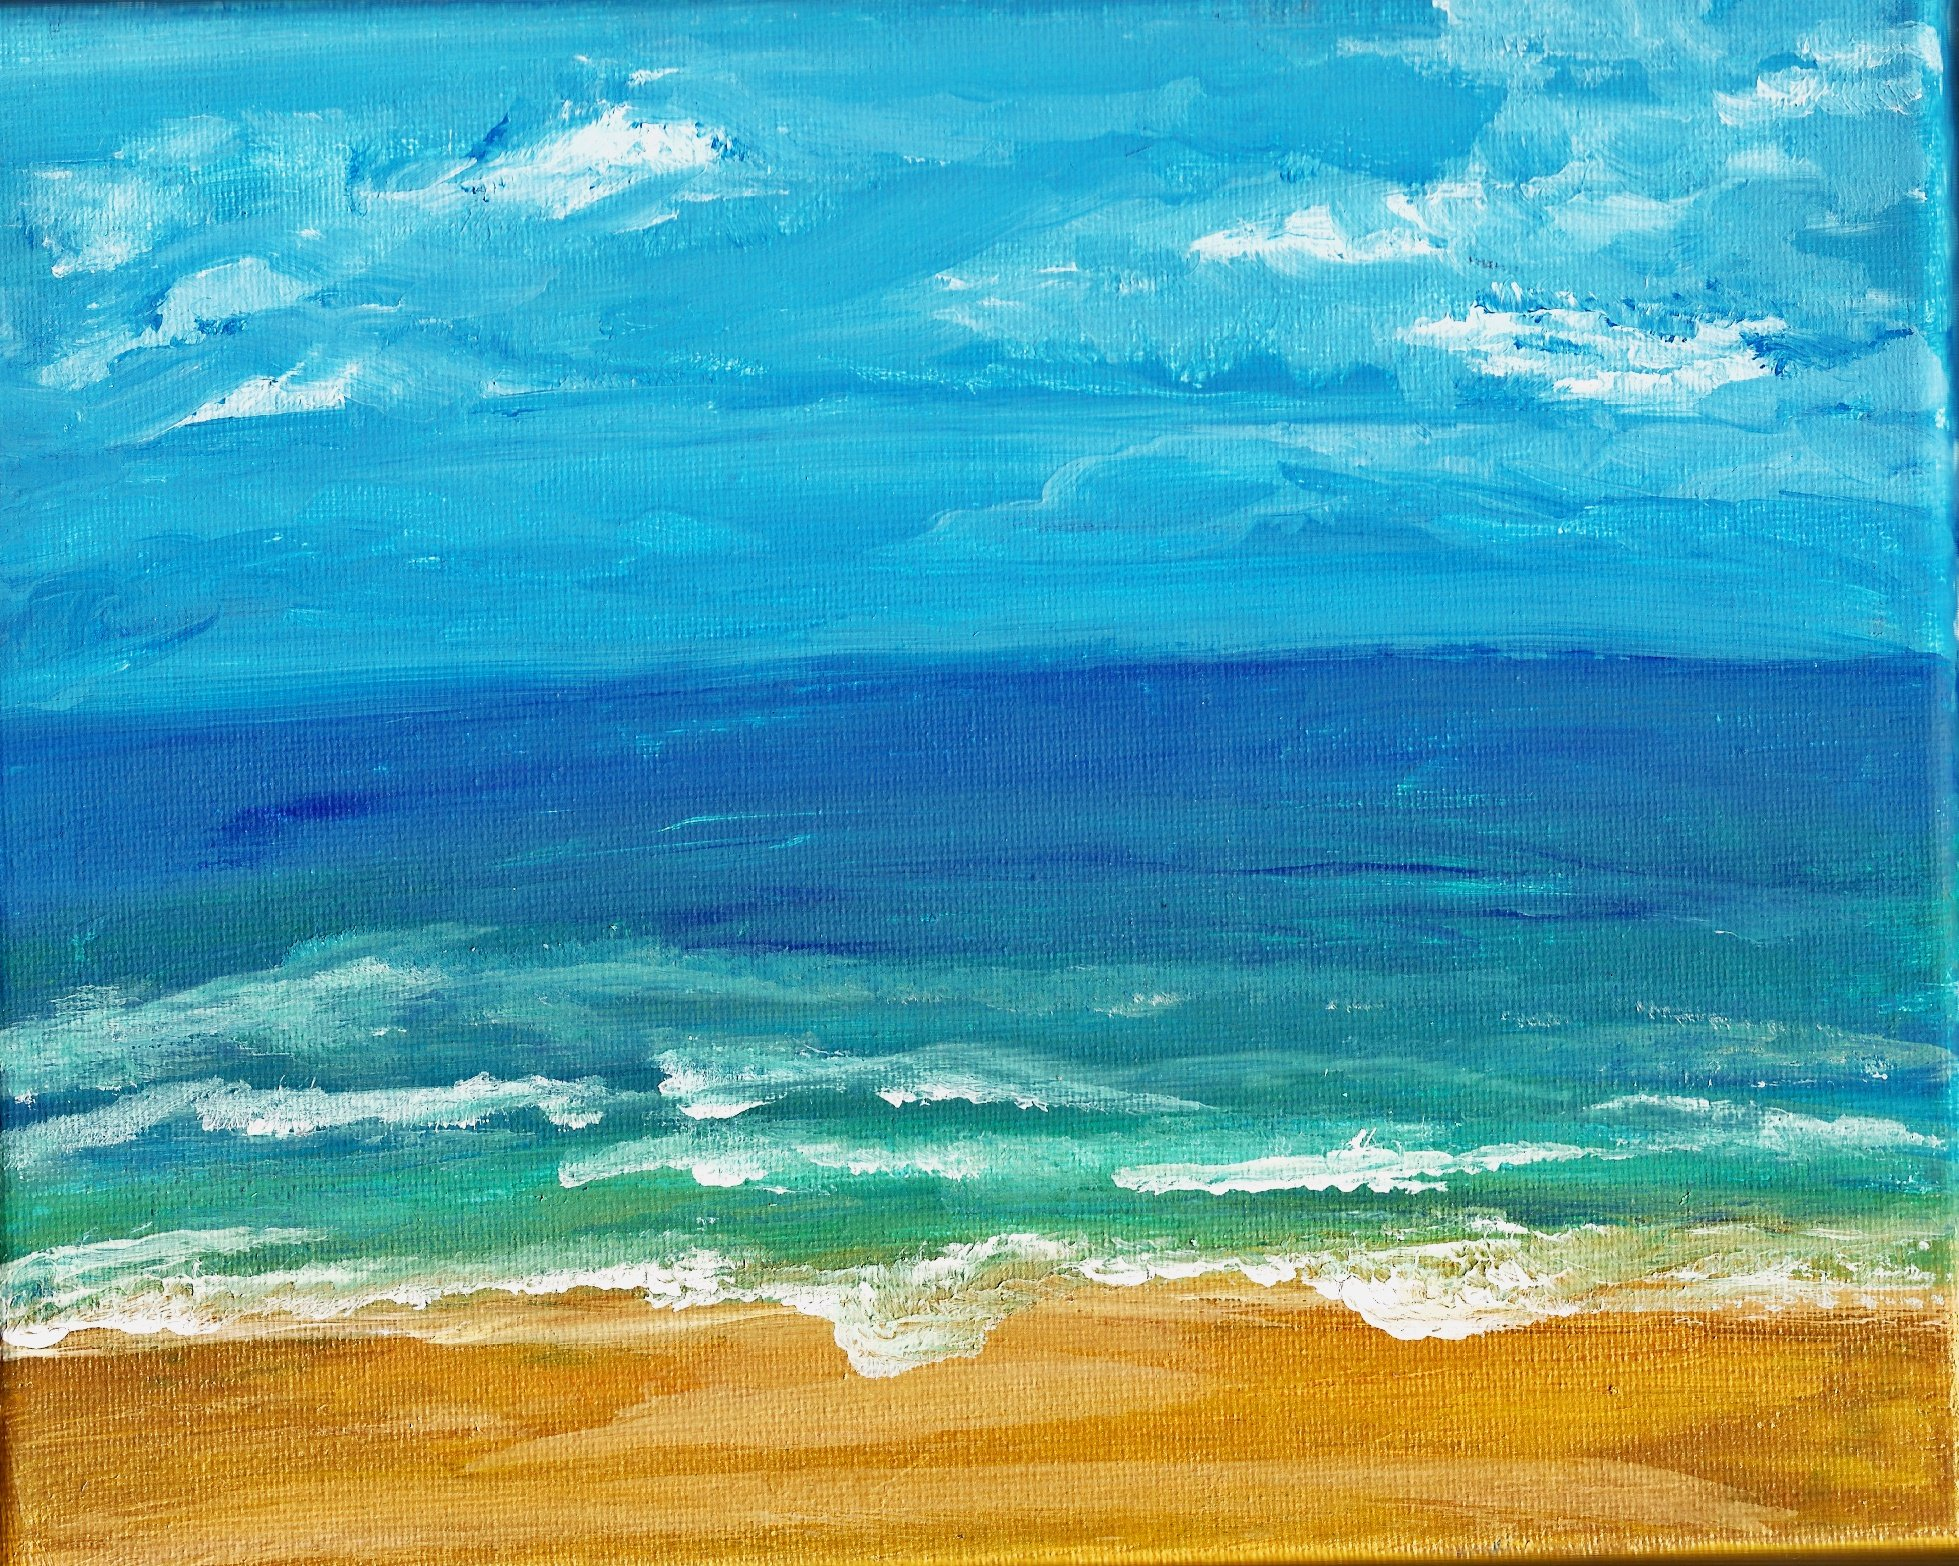 ACRYLICS ON FRAMED CANVAS VIBRANT BEACH SEASIDE SCENE